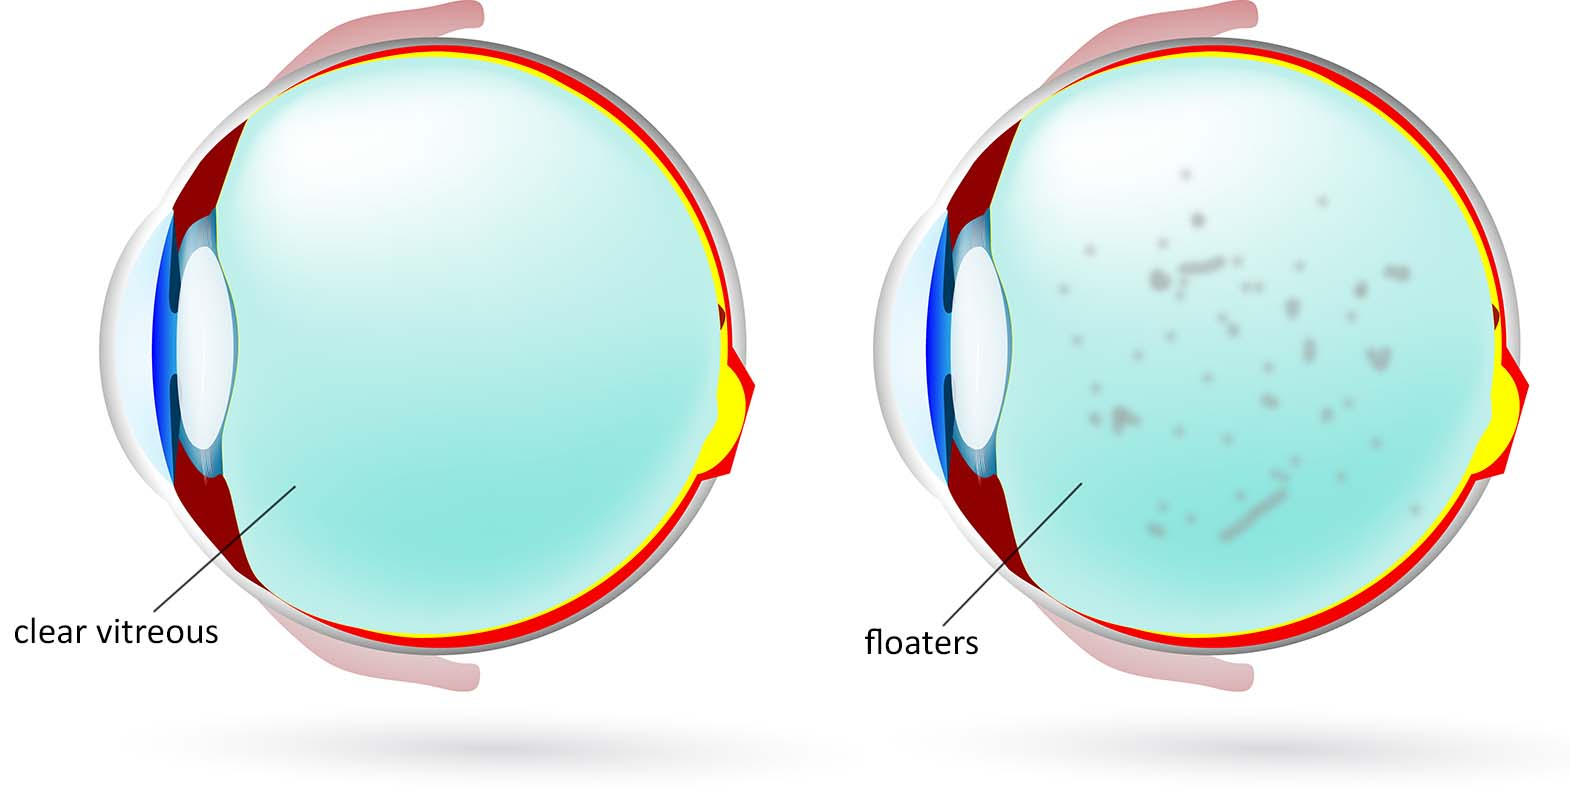 Normal Vs Floaters Photo